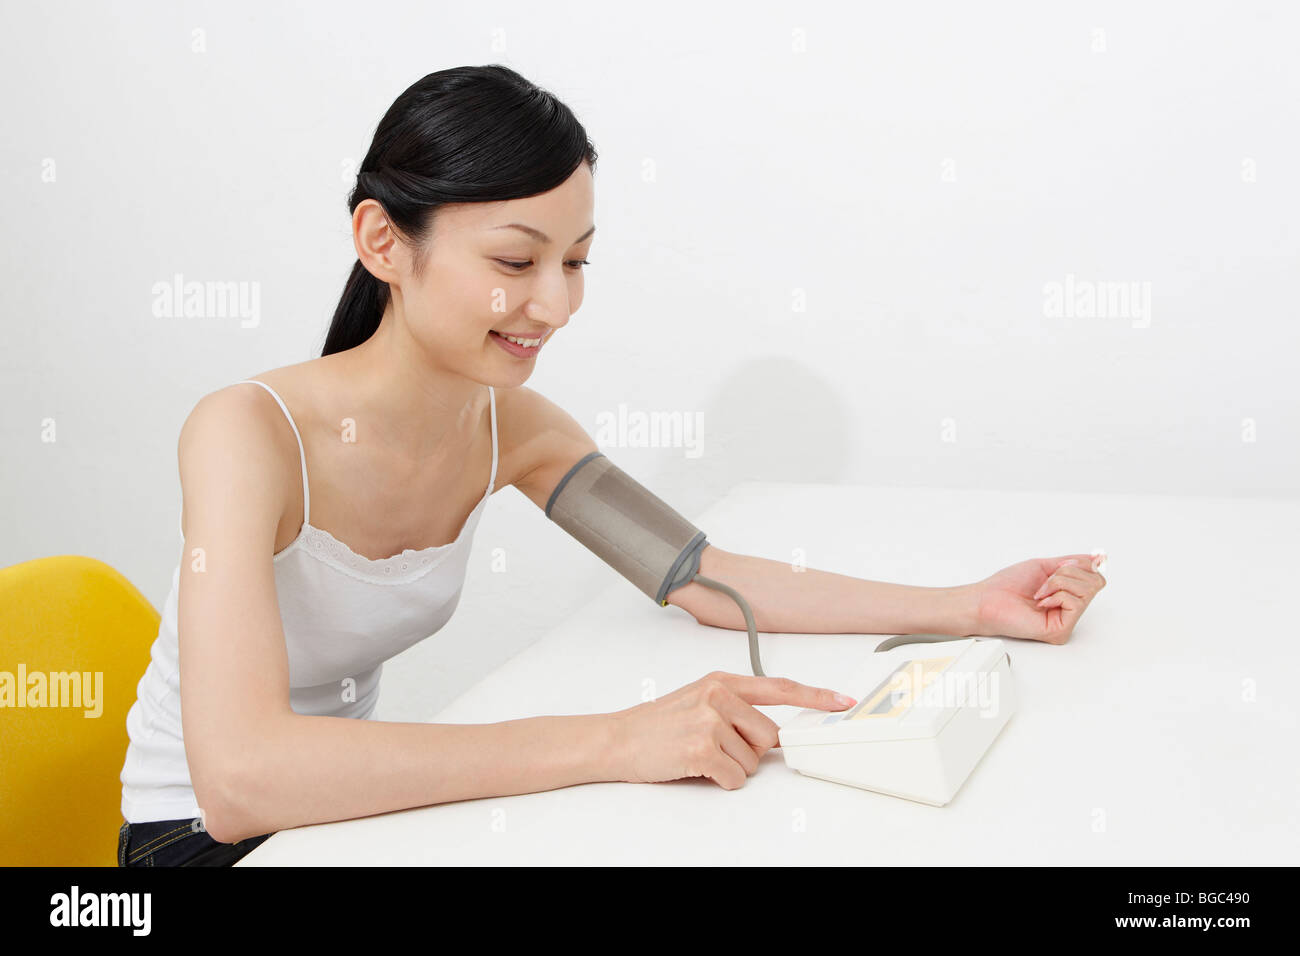 Mid adult woman checking blood pressure - Stock Image